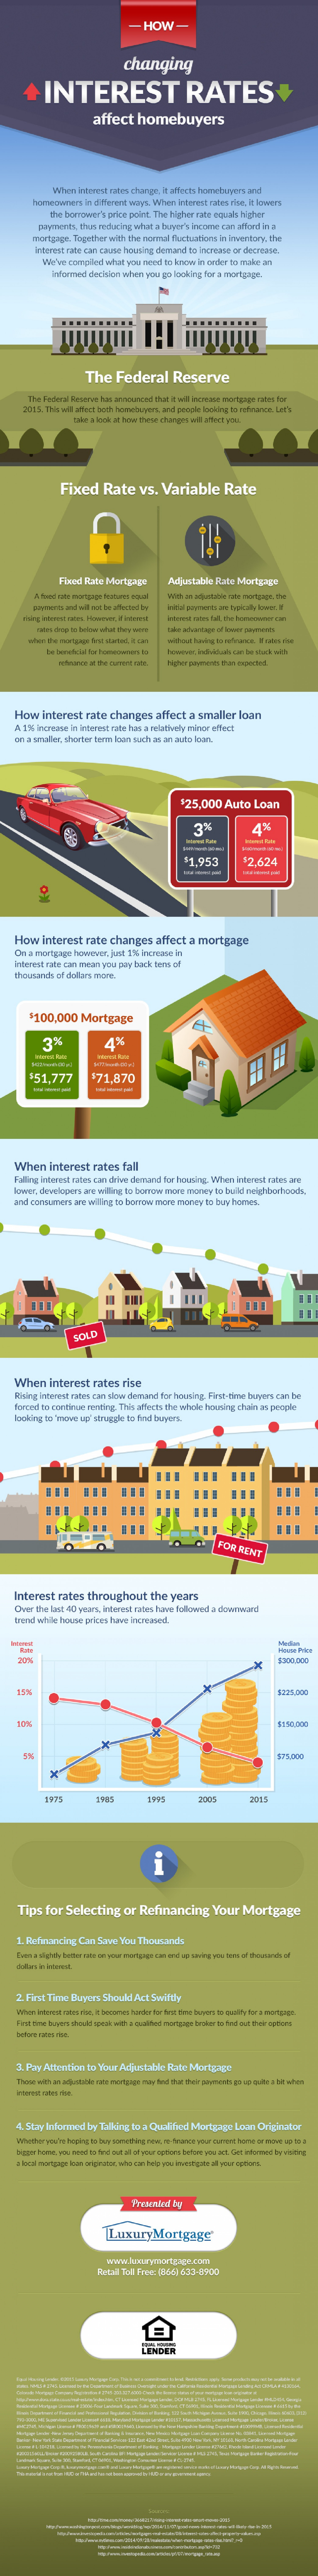 How changing interest rates affect homebuyers Infographic